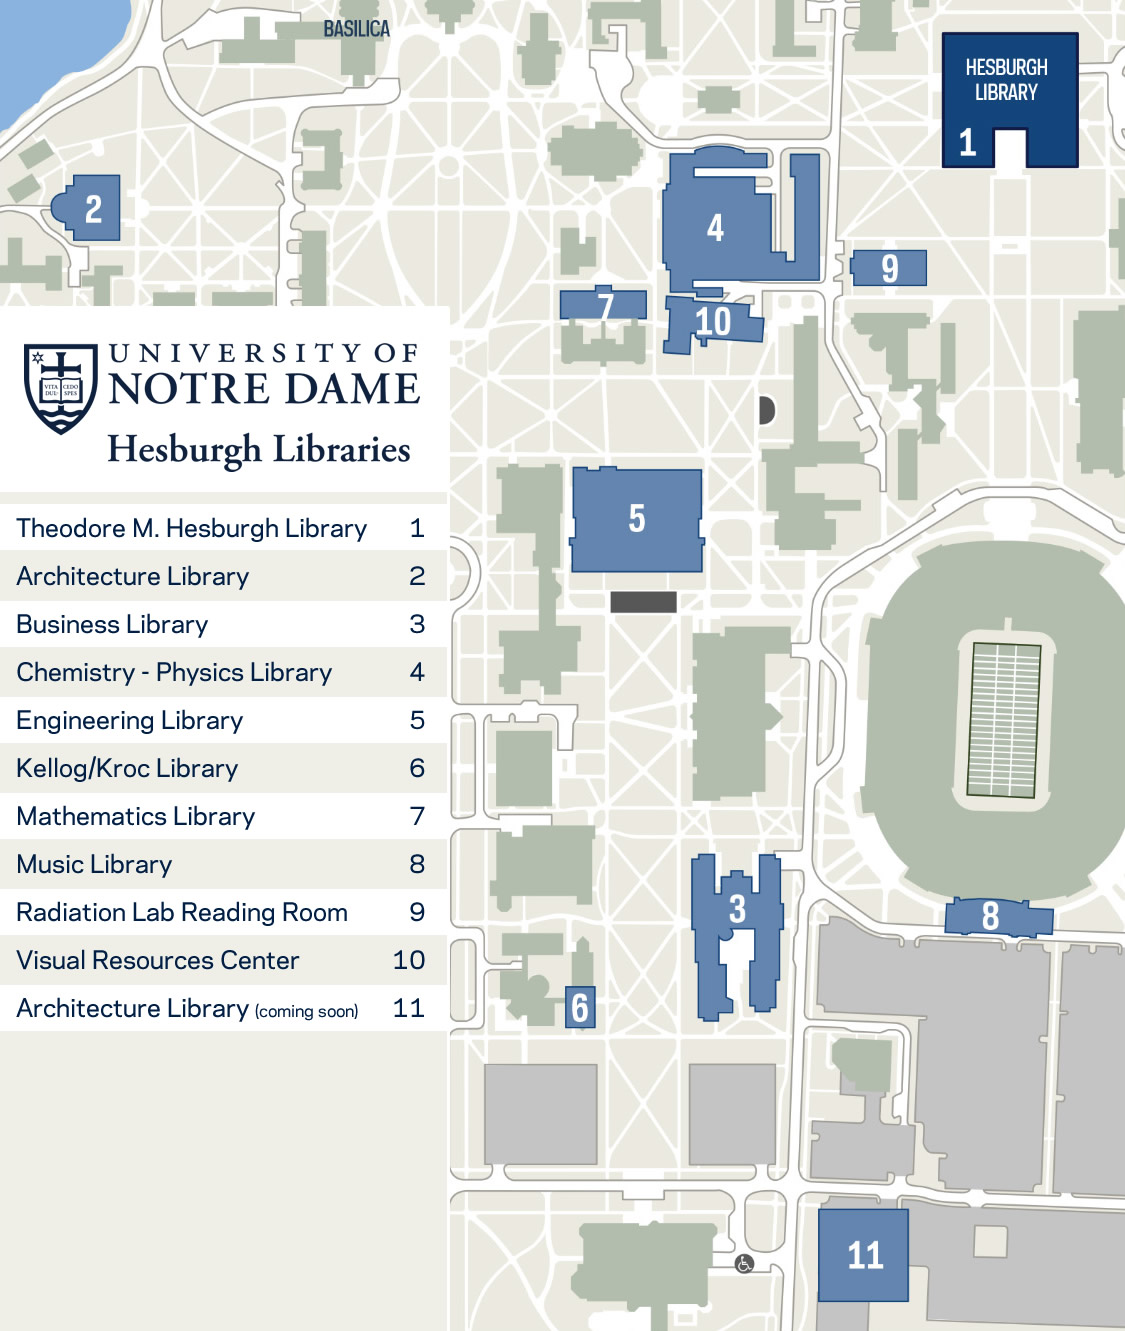 Visitor Information | Hesburgh Liries on west alabama campus map, oaks christian campus map, navy campus map, ohio st campus map, yeshiva campus map, saint michael's campus map, penn st campus map, fort valley state campus map, ames campus map, peru state campus map, western state campus map, florida st campus map, cardinal newman campus map, harvard campus map, ole miss campus map, southeastern louisiana campus map, montana western campus map, ndnu campus map, syracuse u campus map, duke university campus map,